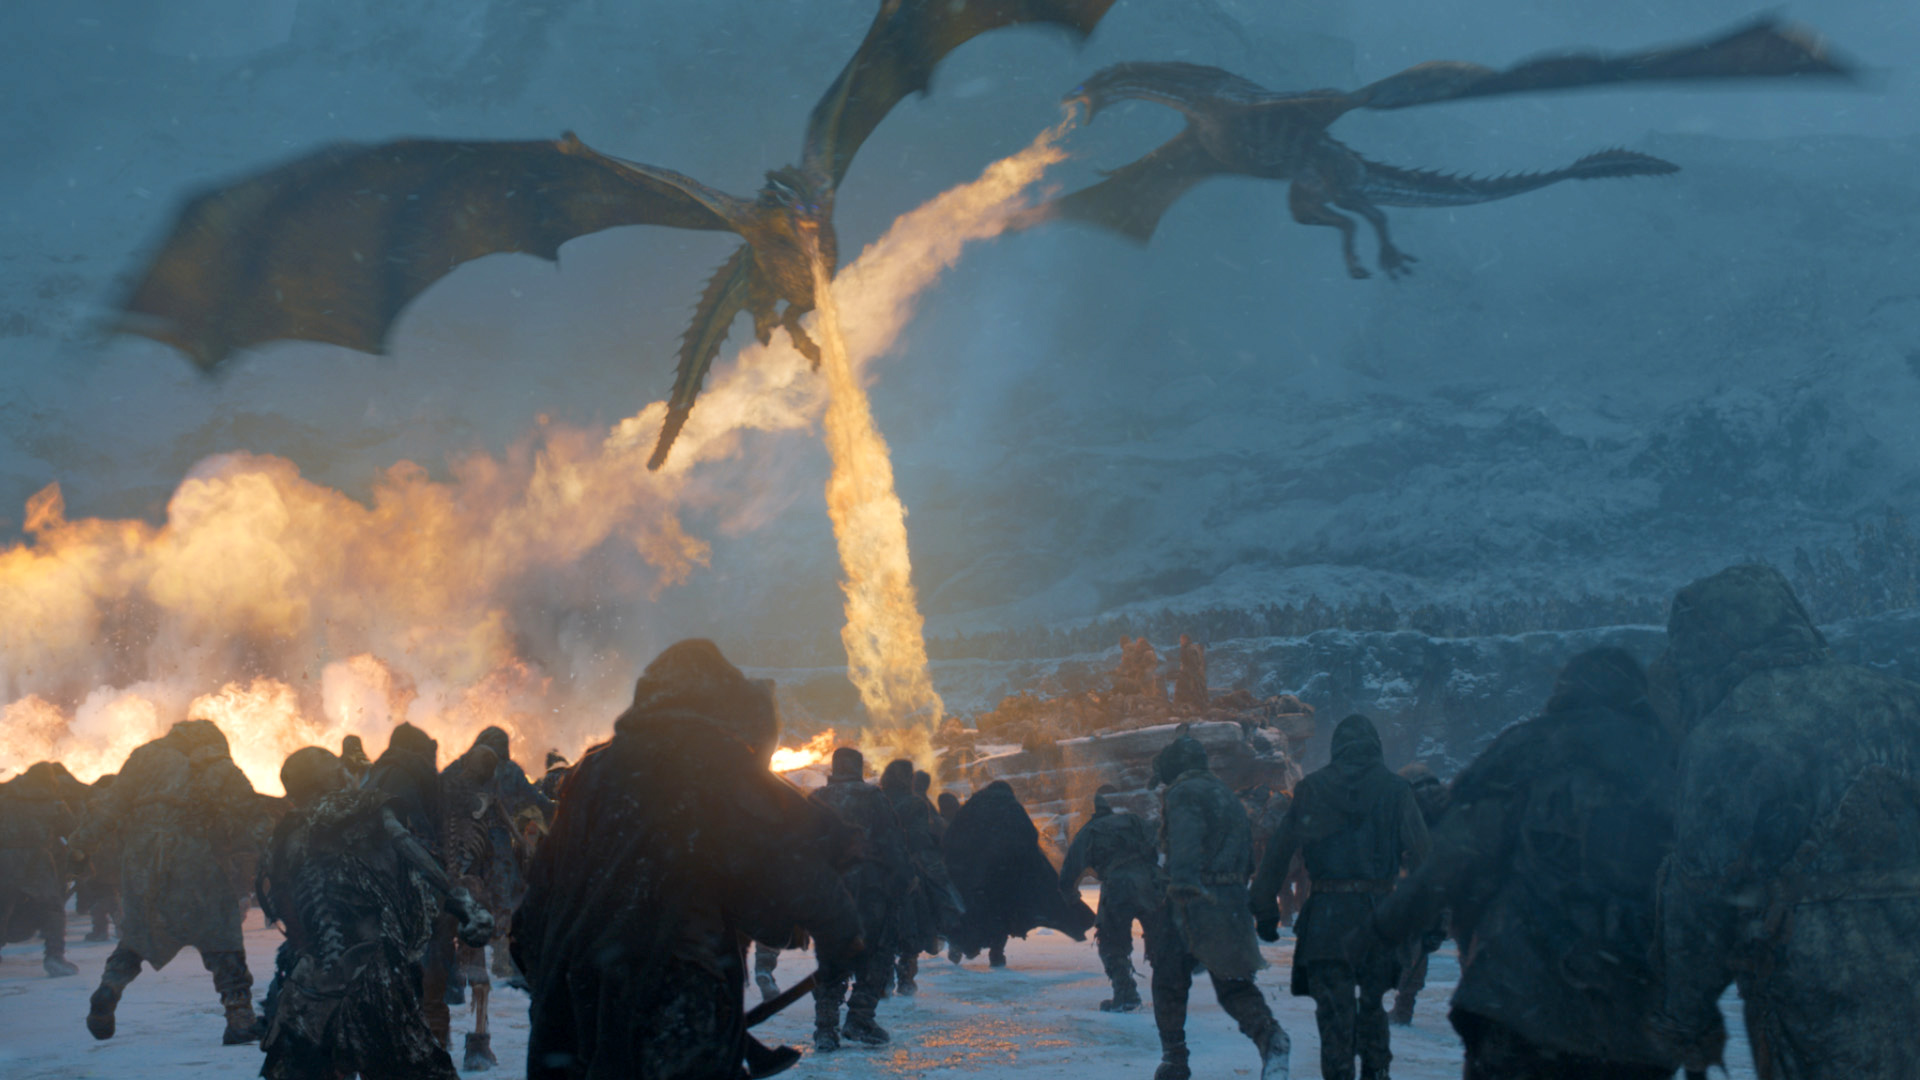 'Game of Thrones' continues on HBO